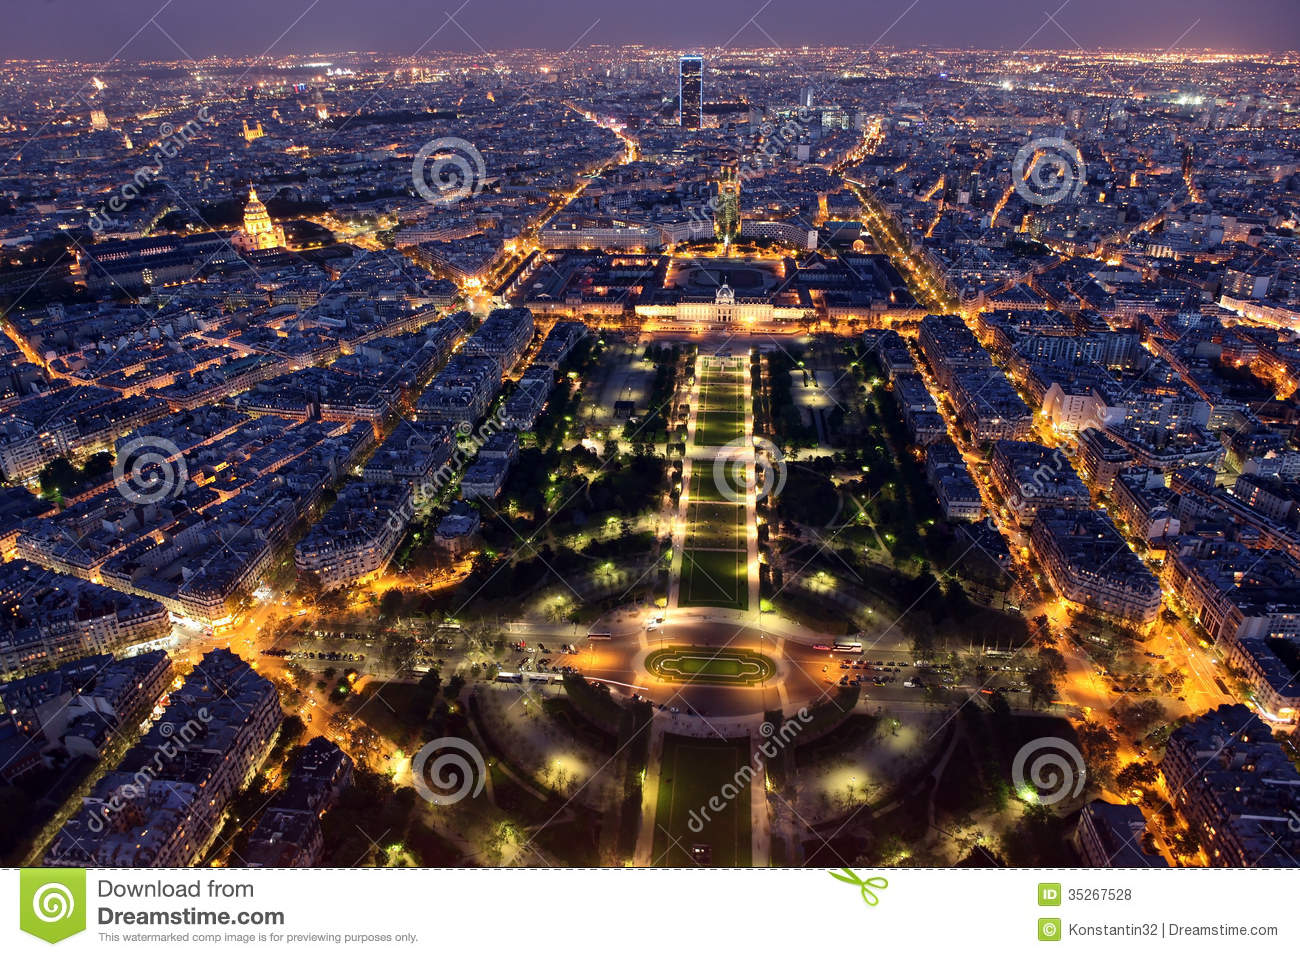 Le Meilleur Famous And Beautiful Night View To Paris From Eiffel Tower Ce Mois Ci